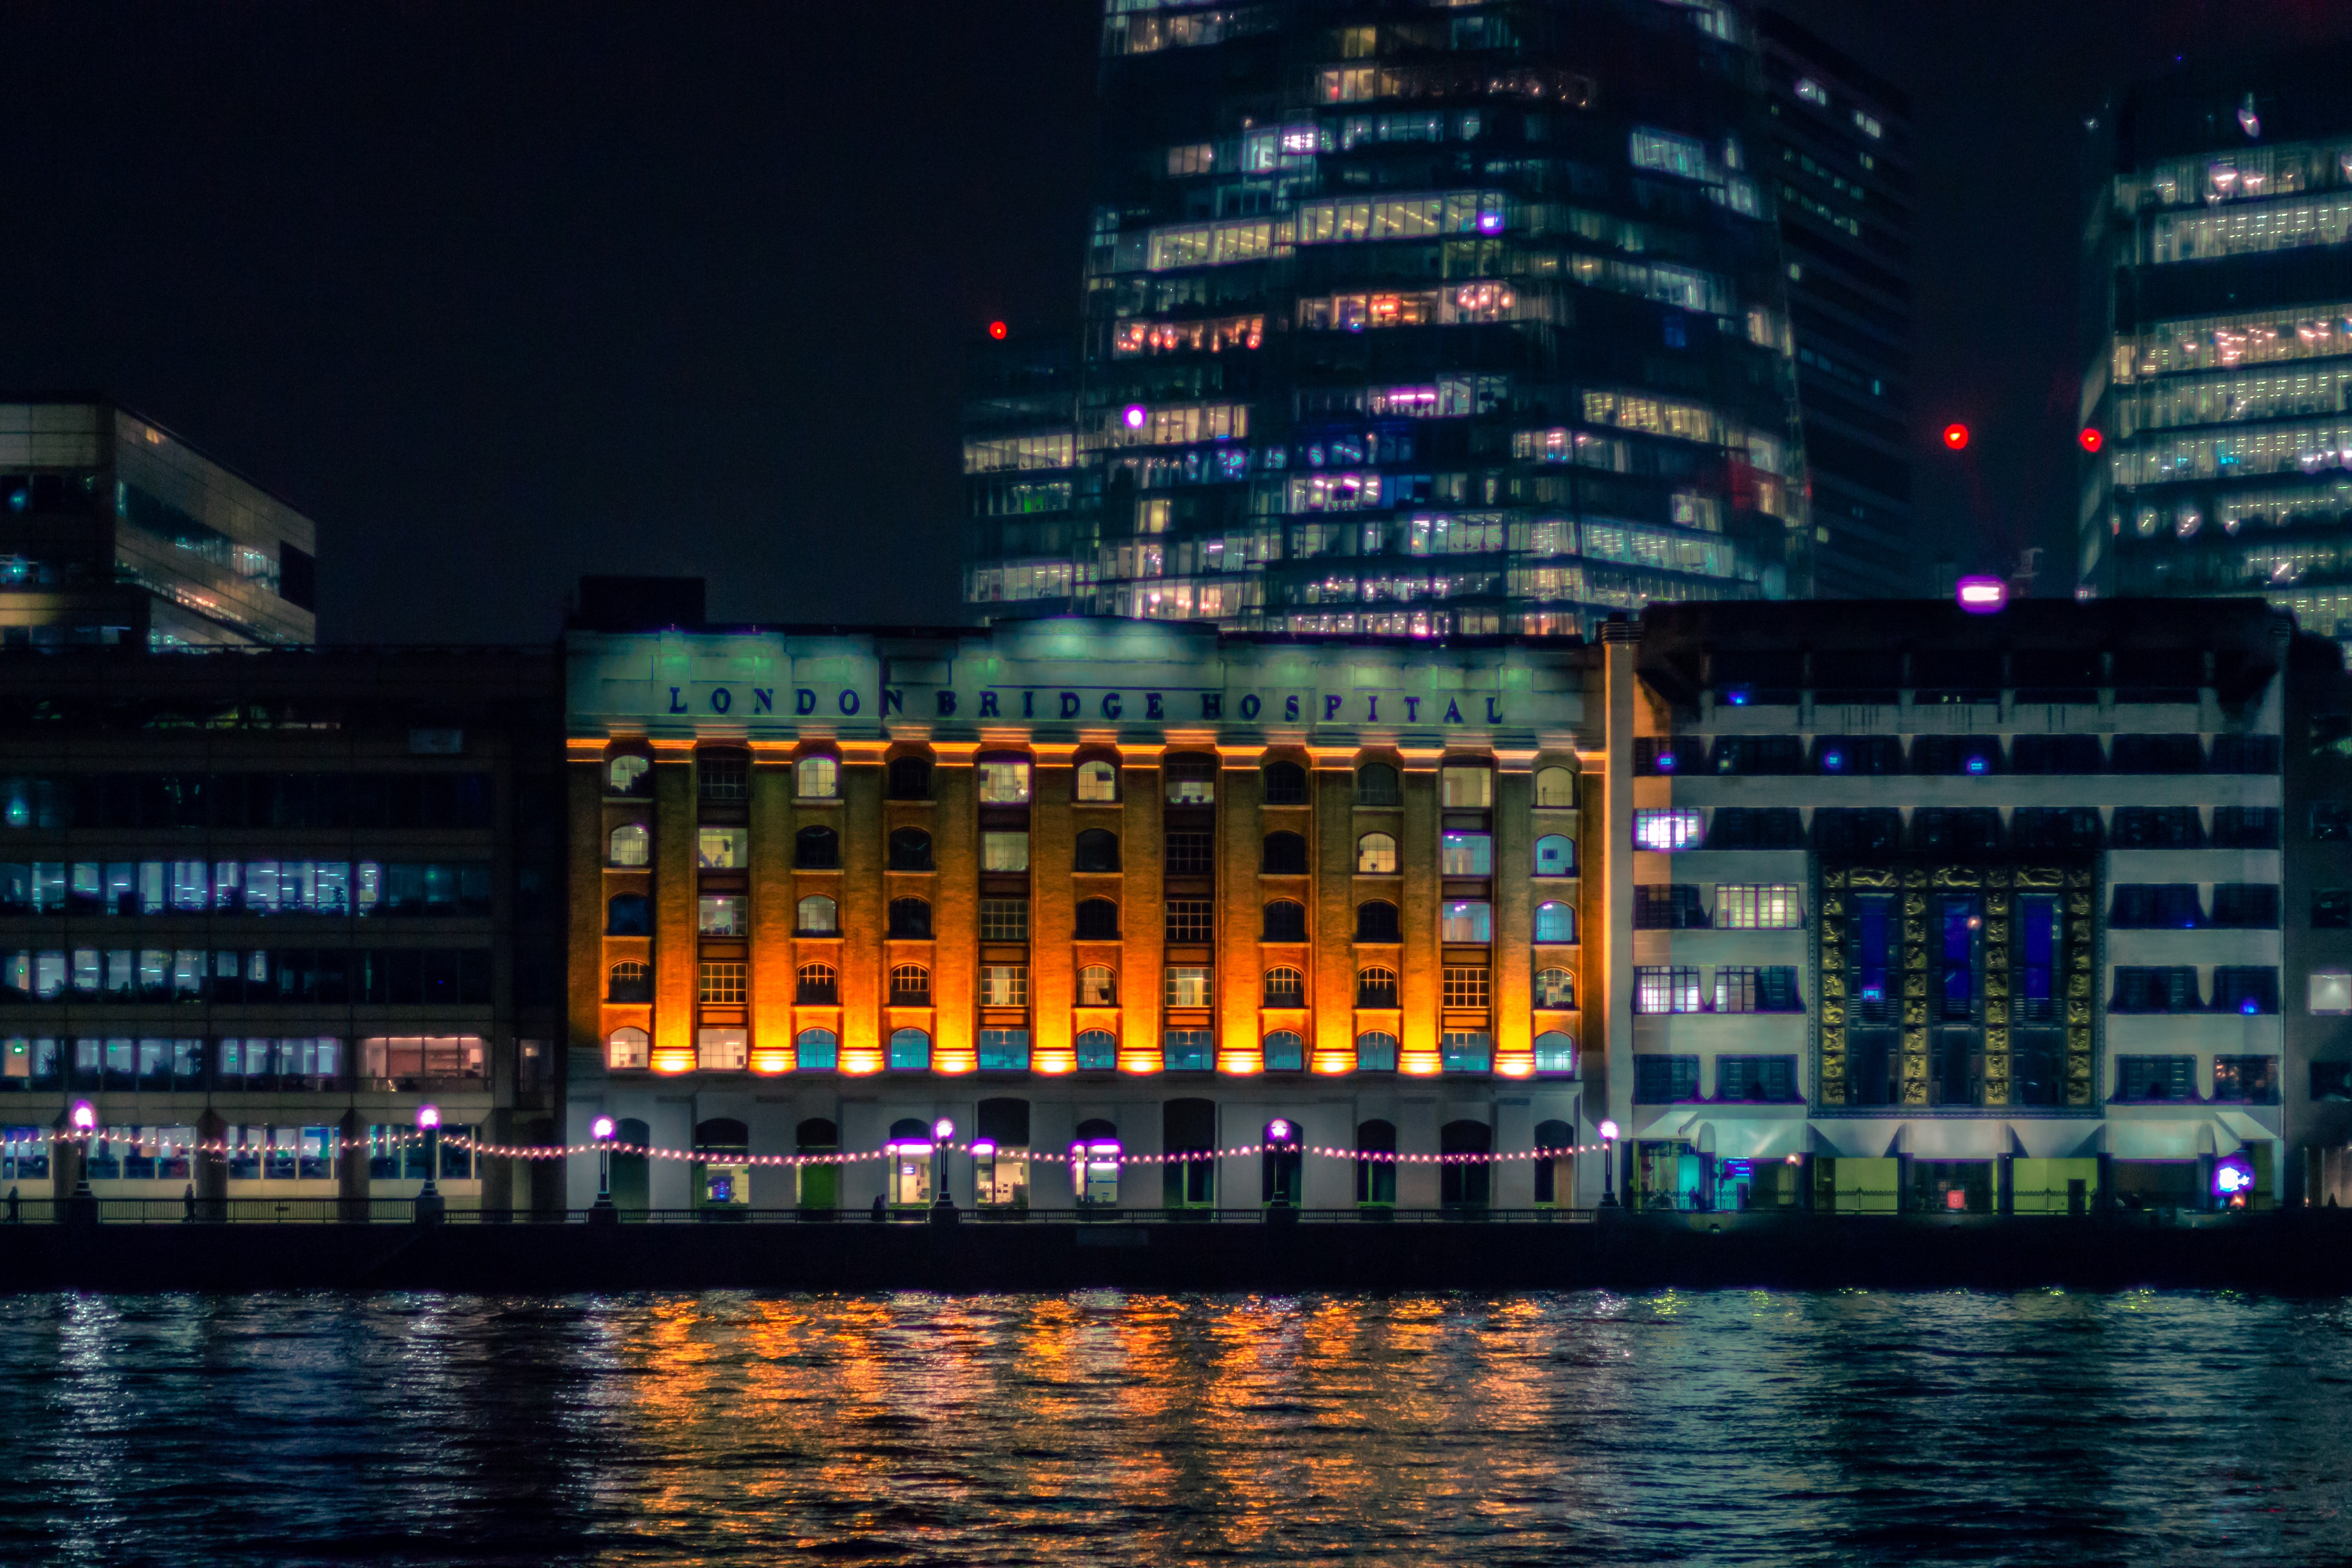 landscape photography of cityscape near body of water